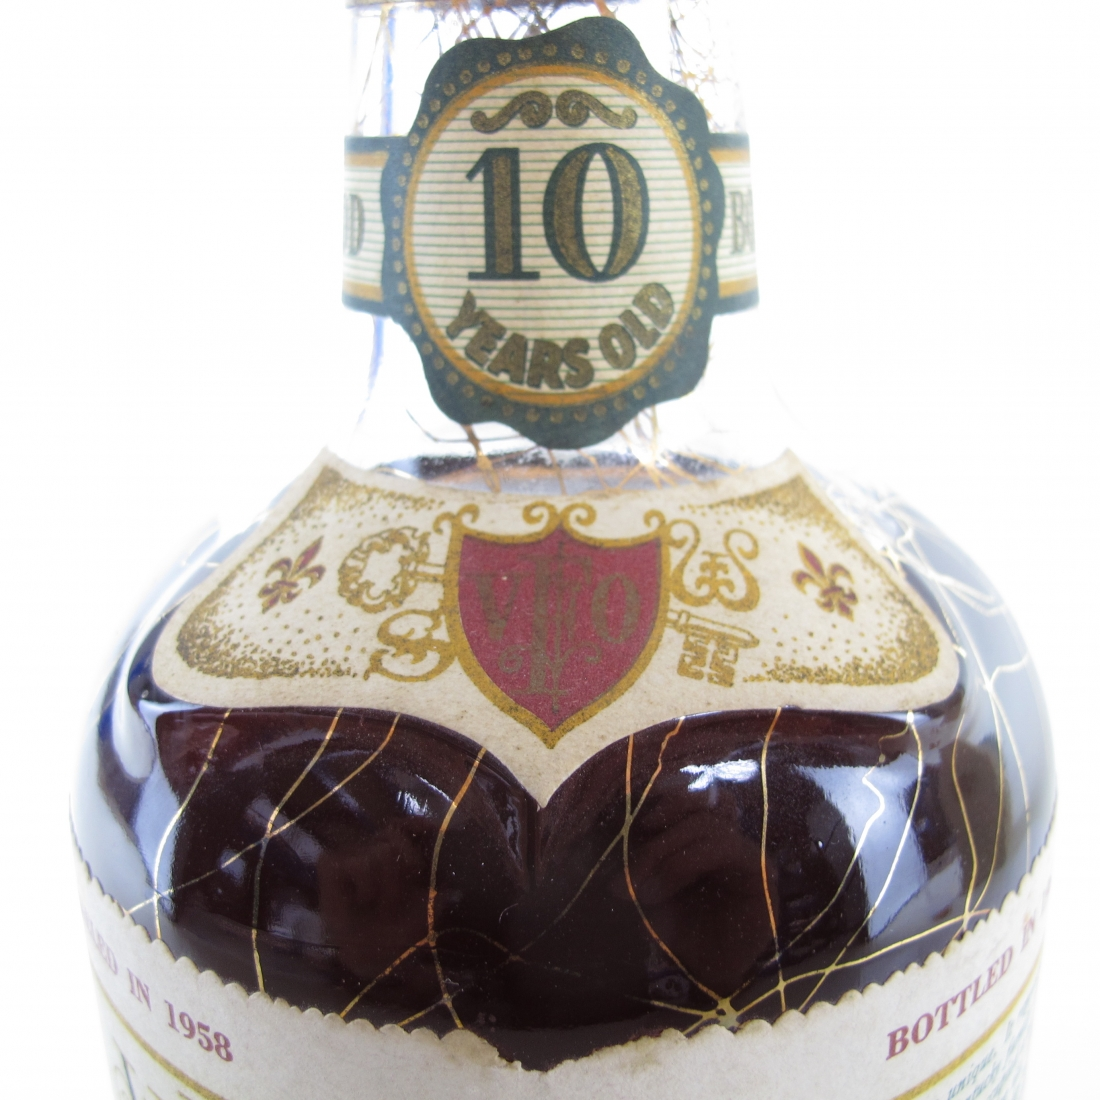 Very Extra Old Fitzgerald 1958 Bonded 10 Year Old 100 Proof / Stitzel-Weller